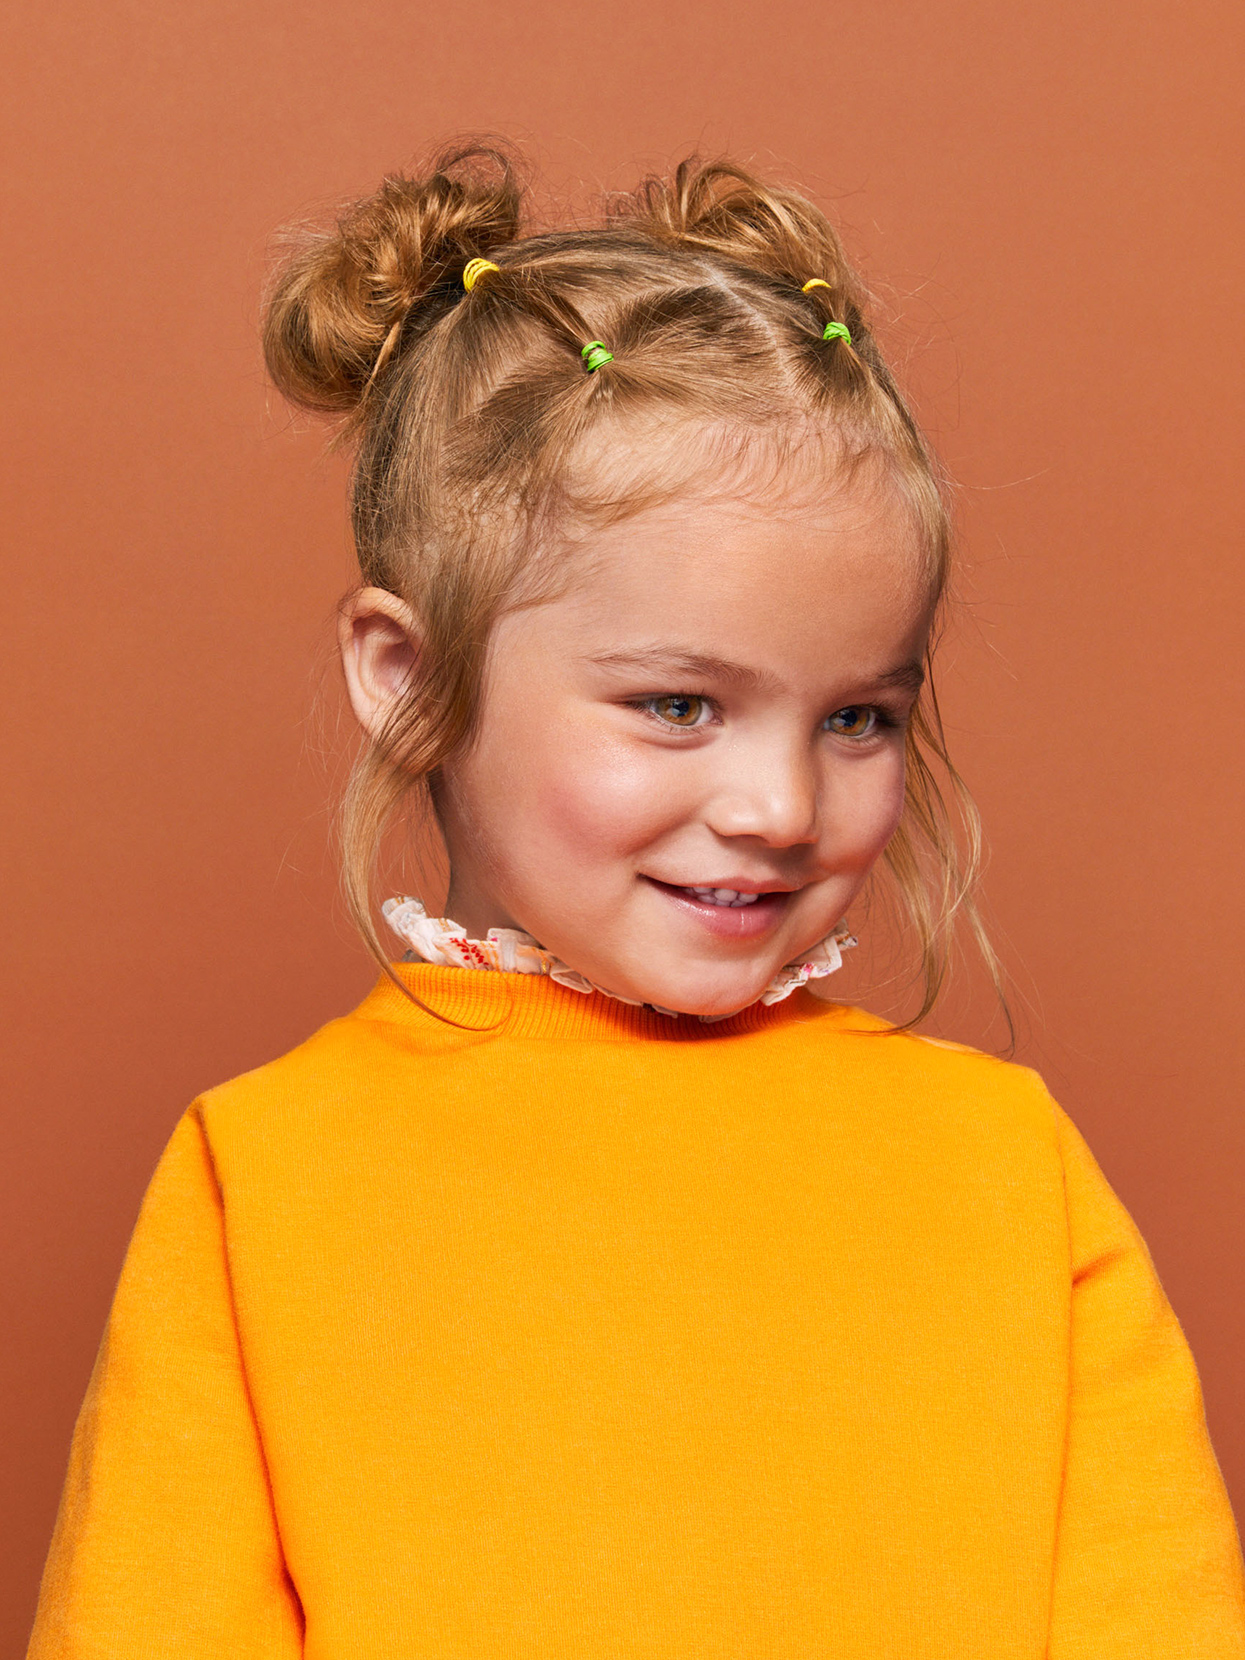 preschool-aged girl with rubber band hairstyle